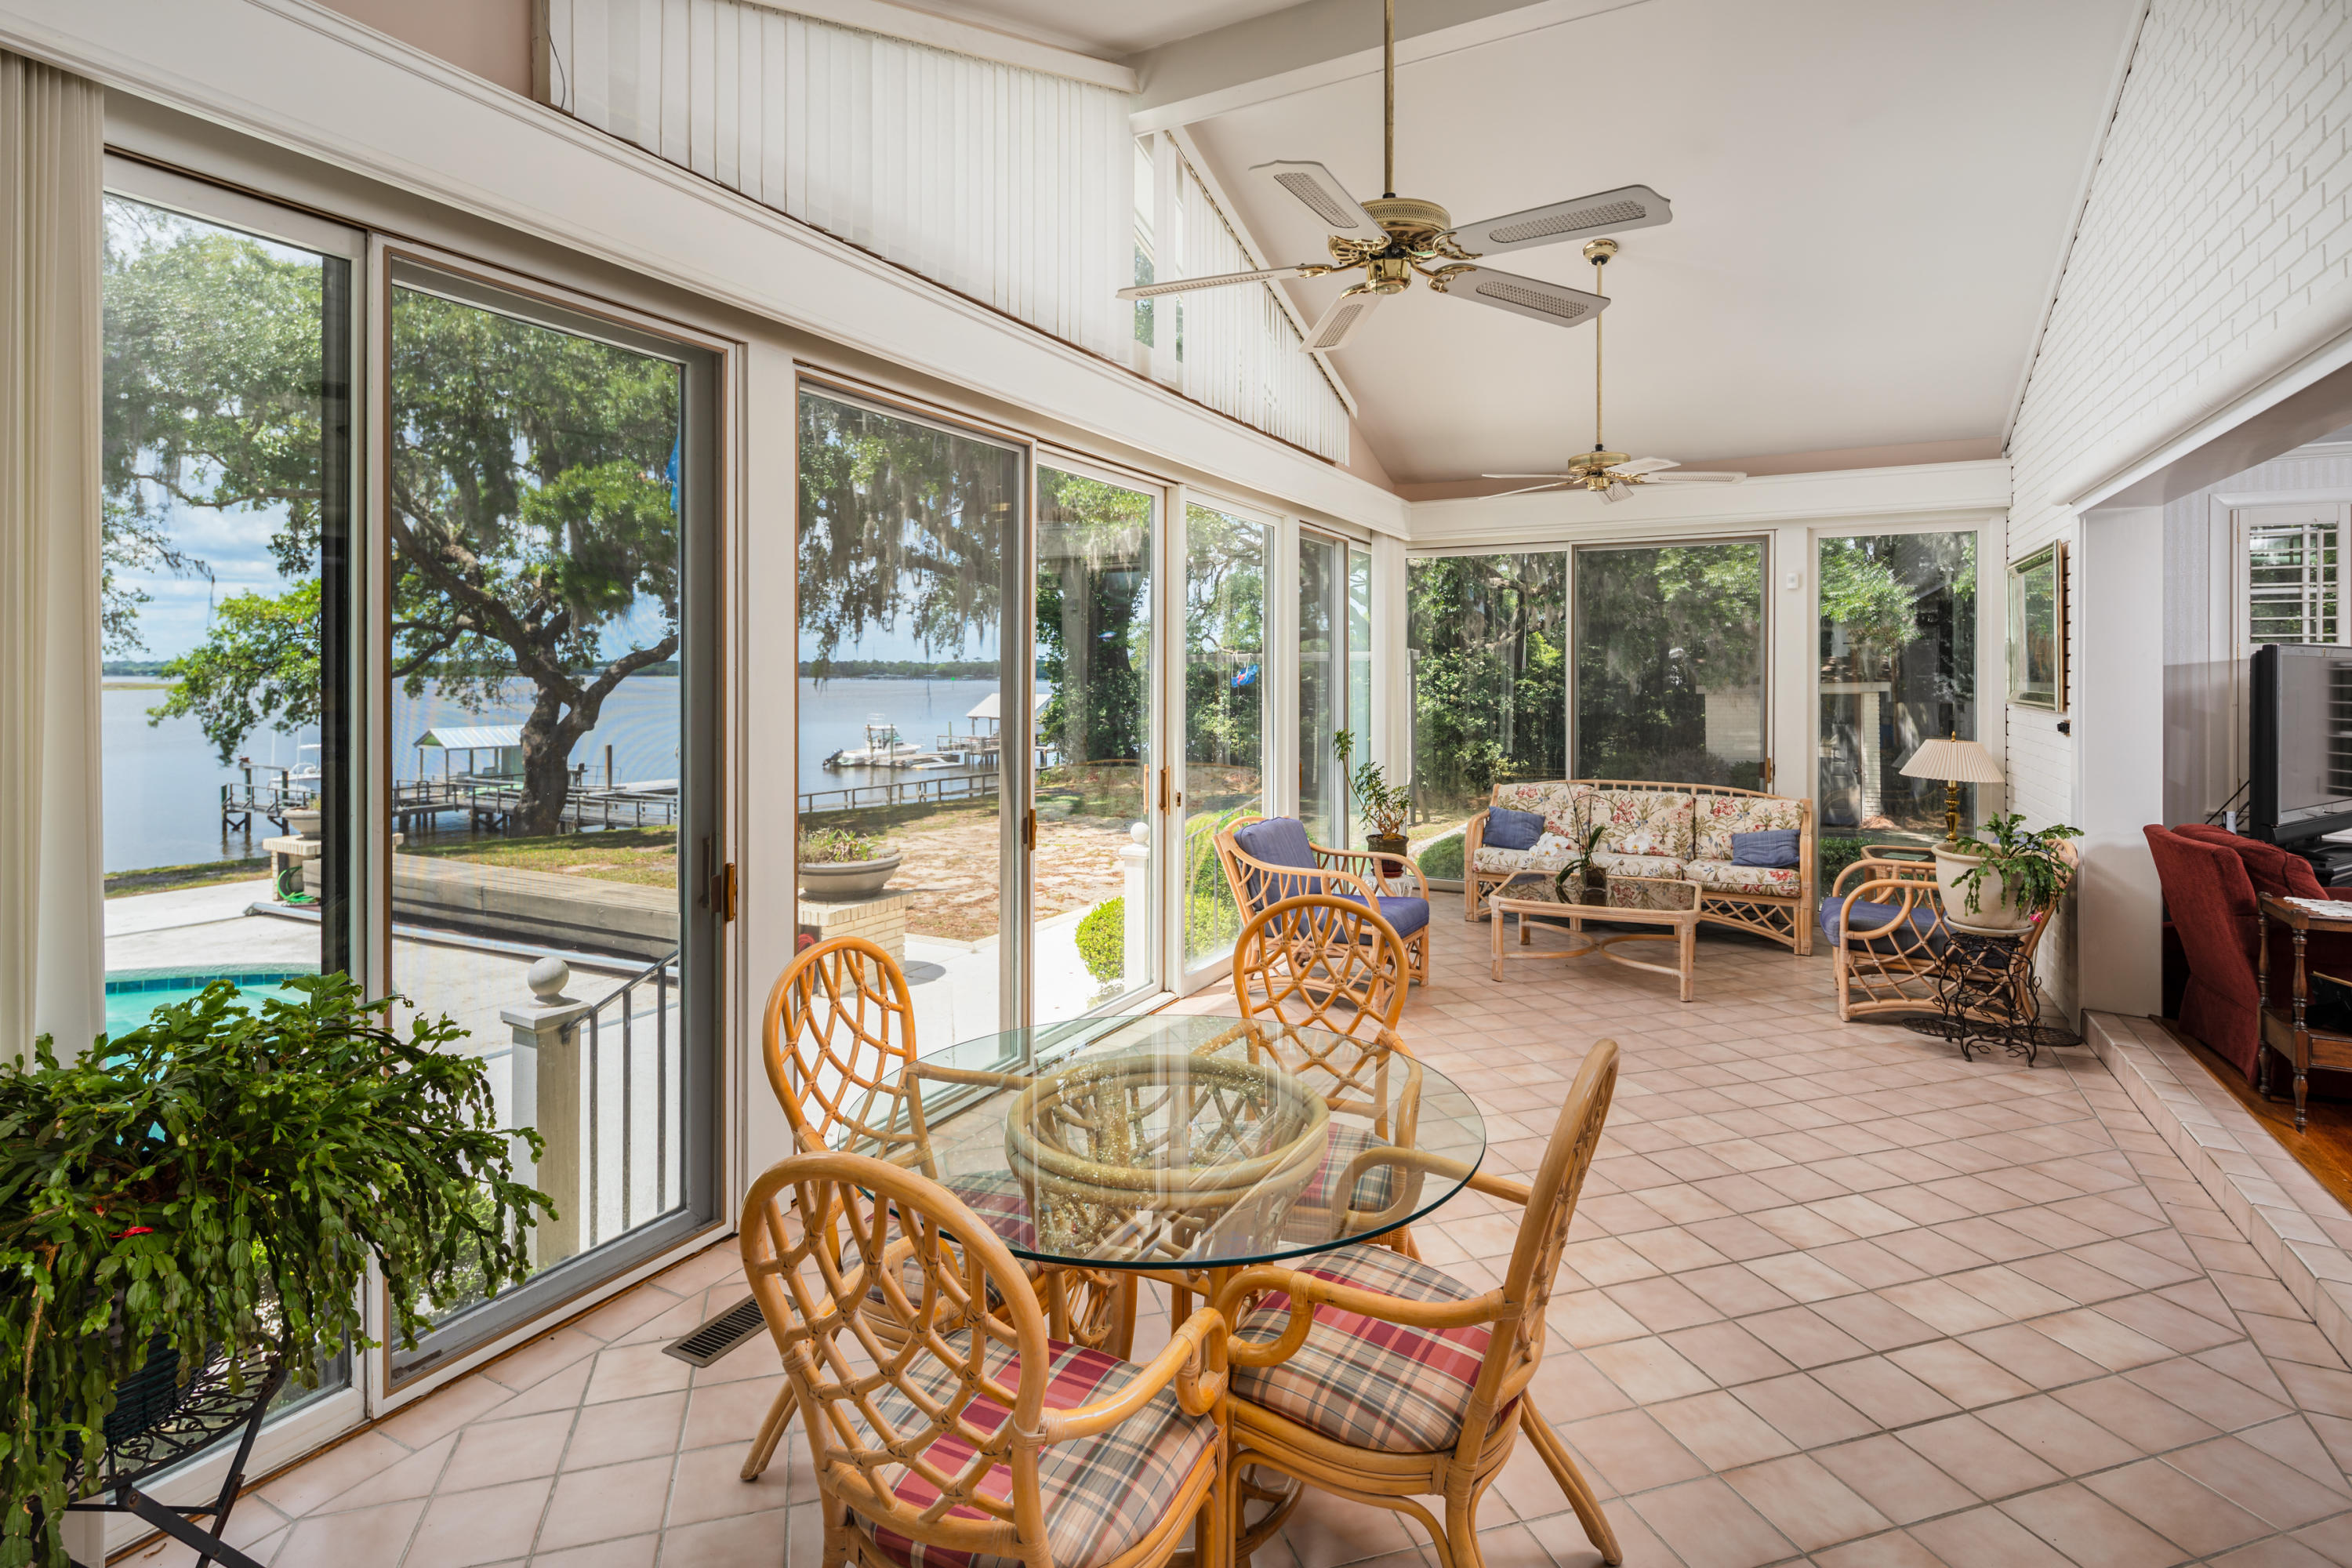 Riverland Terrace Homes For Sale - 207 Stono, Charleston, SC - 0